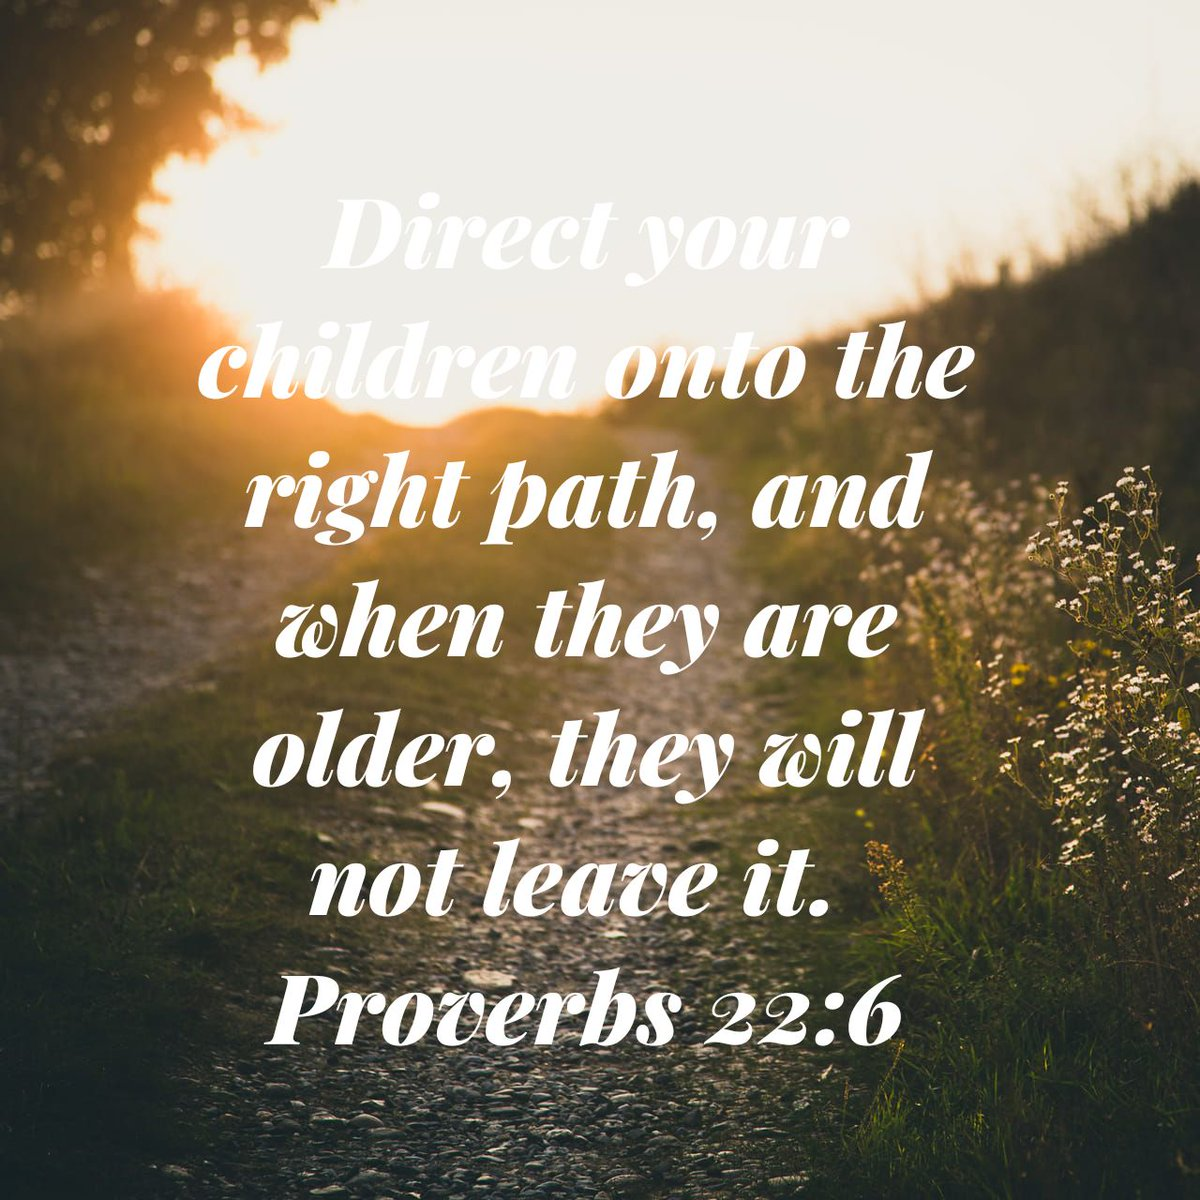 Direct your children onto the right path, and when they are older, they will not leave it. Proverbs 22:6 NLT  https://t.co/lYXEqY6RCK https://t.co/XC6ceJgwON